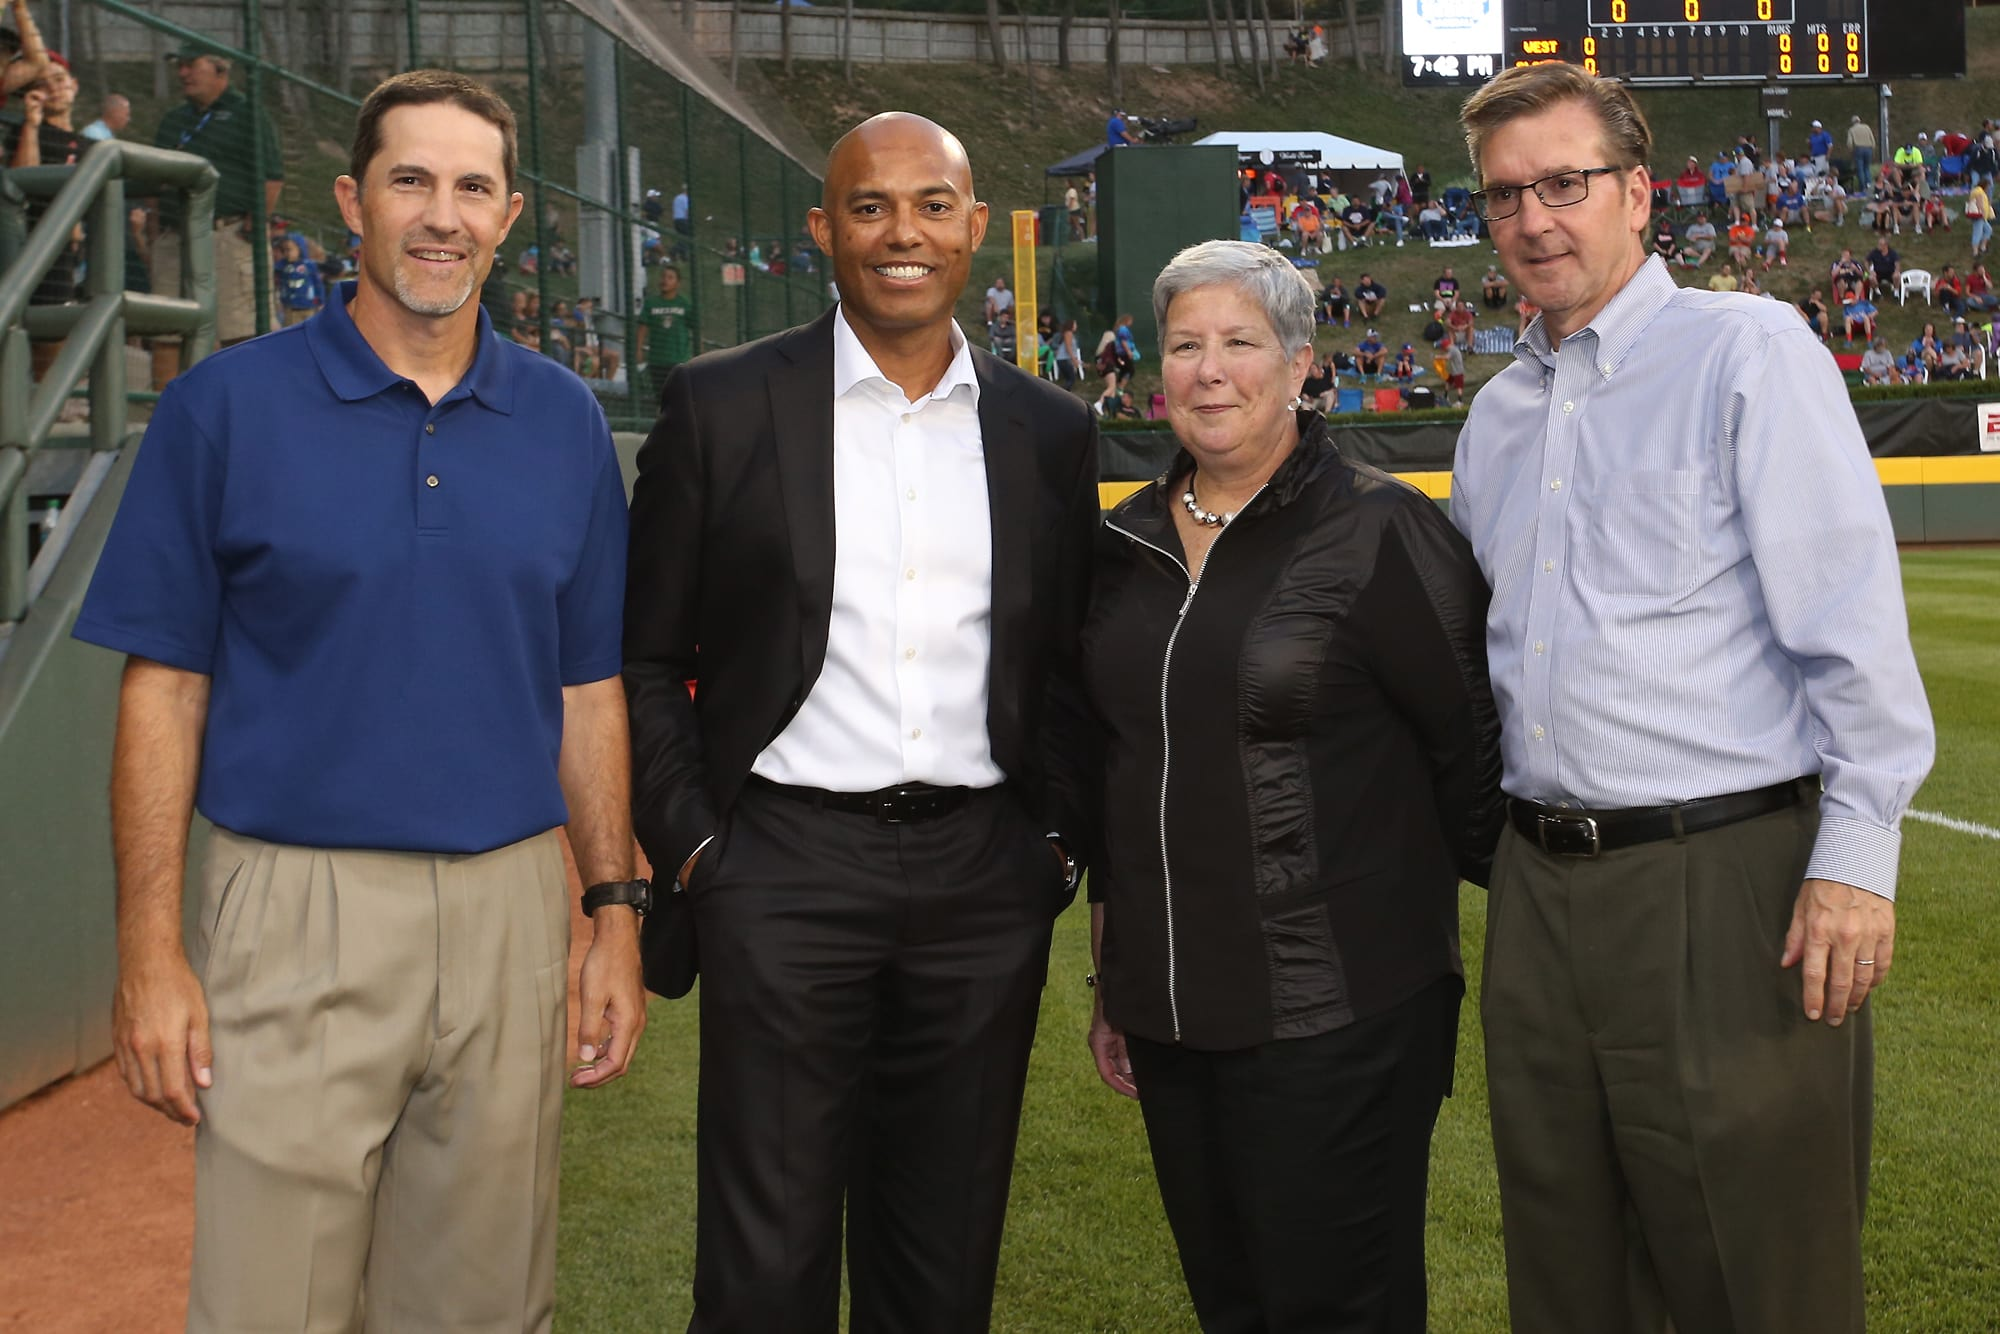 Mike Mussina, Mariano Rivera, Dr. Davie Jane Gilmour, & Stephen D. Keener